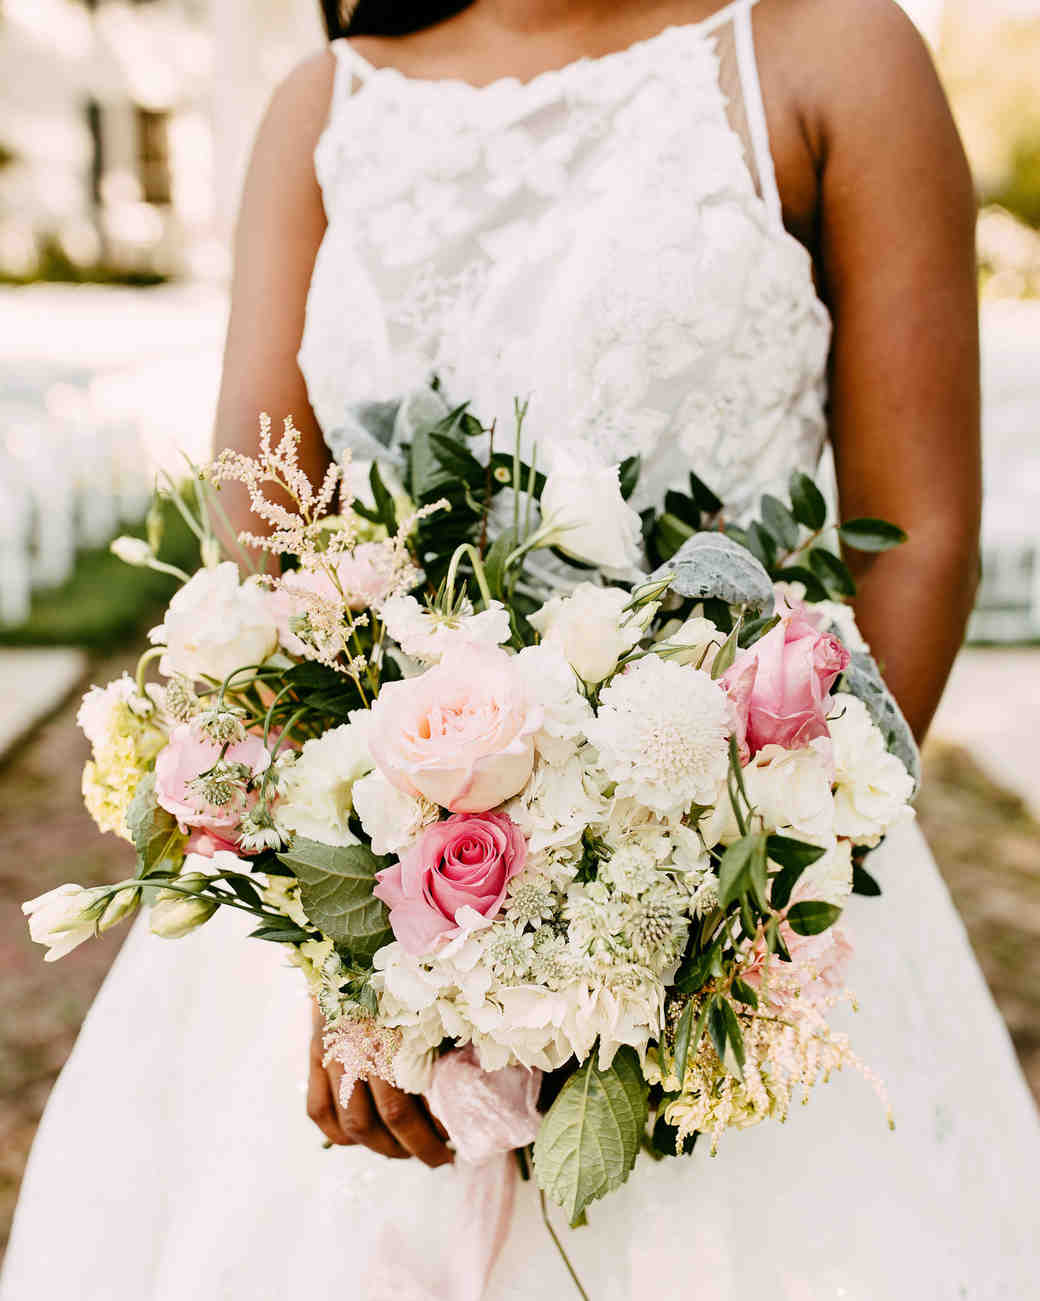 bride holding bouquet of roses and hydrangeas